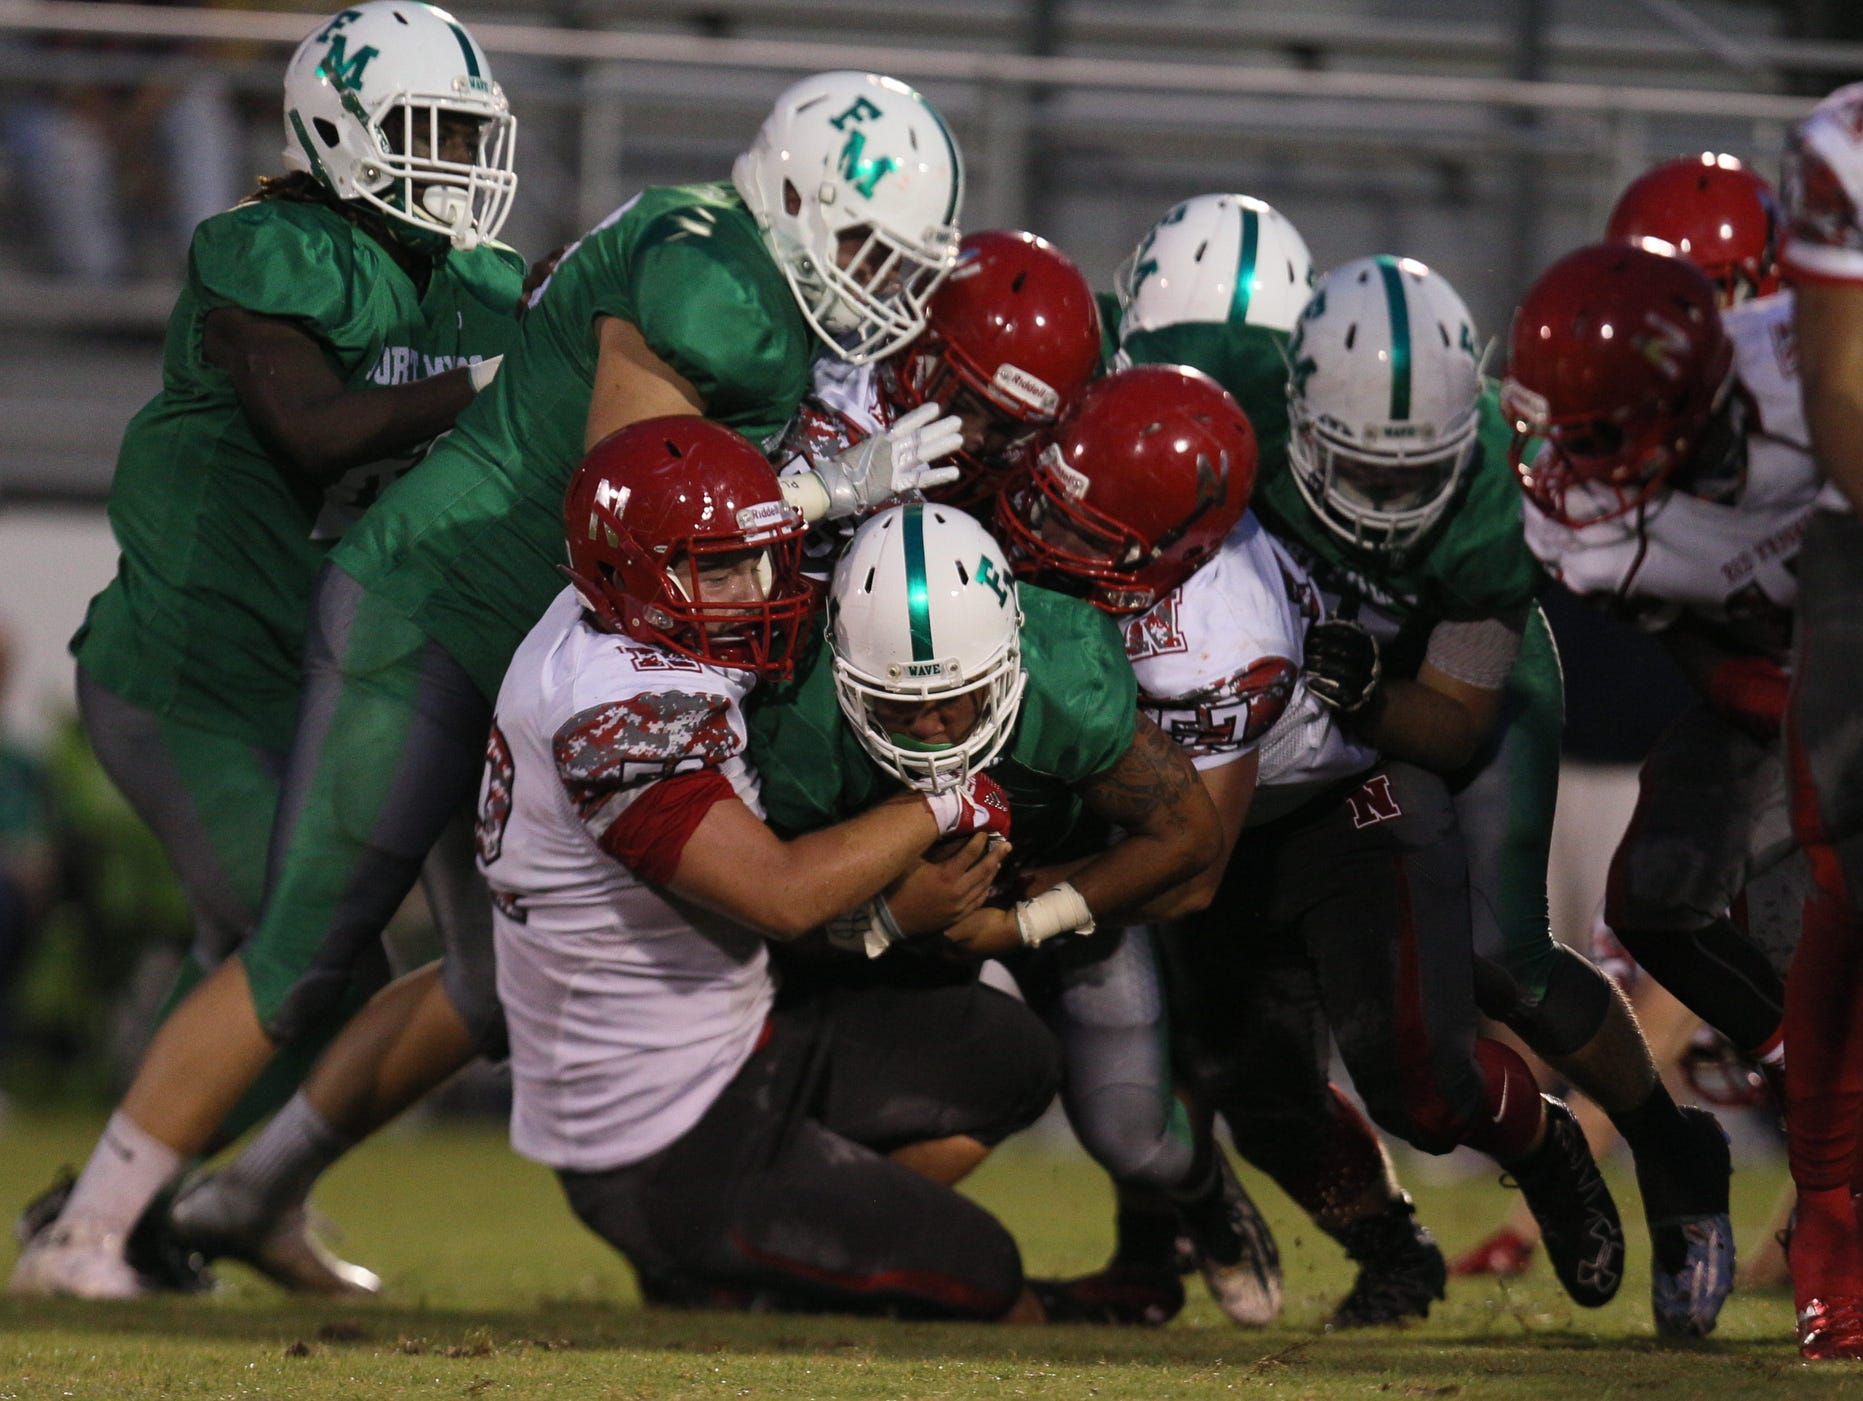 North Fort Myers (3-1) jumped to No. 2 in the Lee County Fab 5.